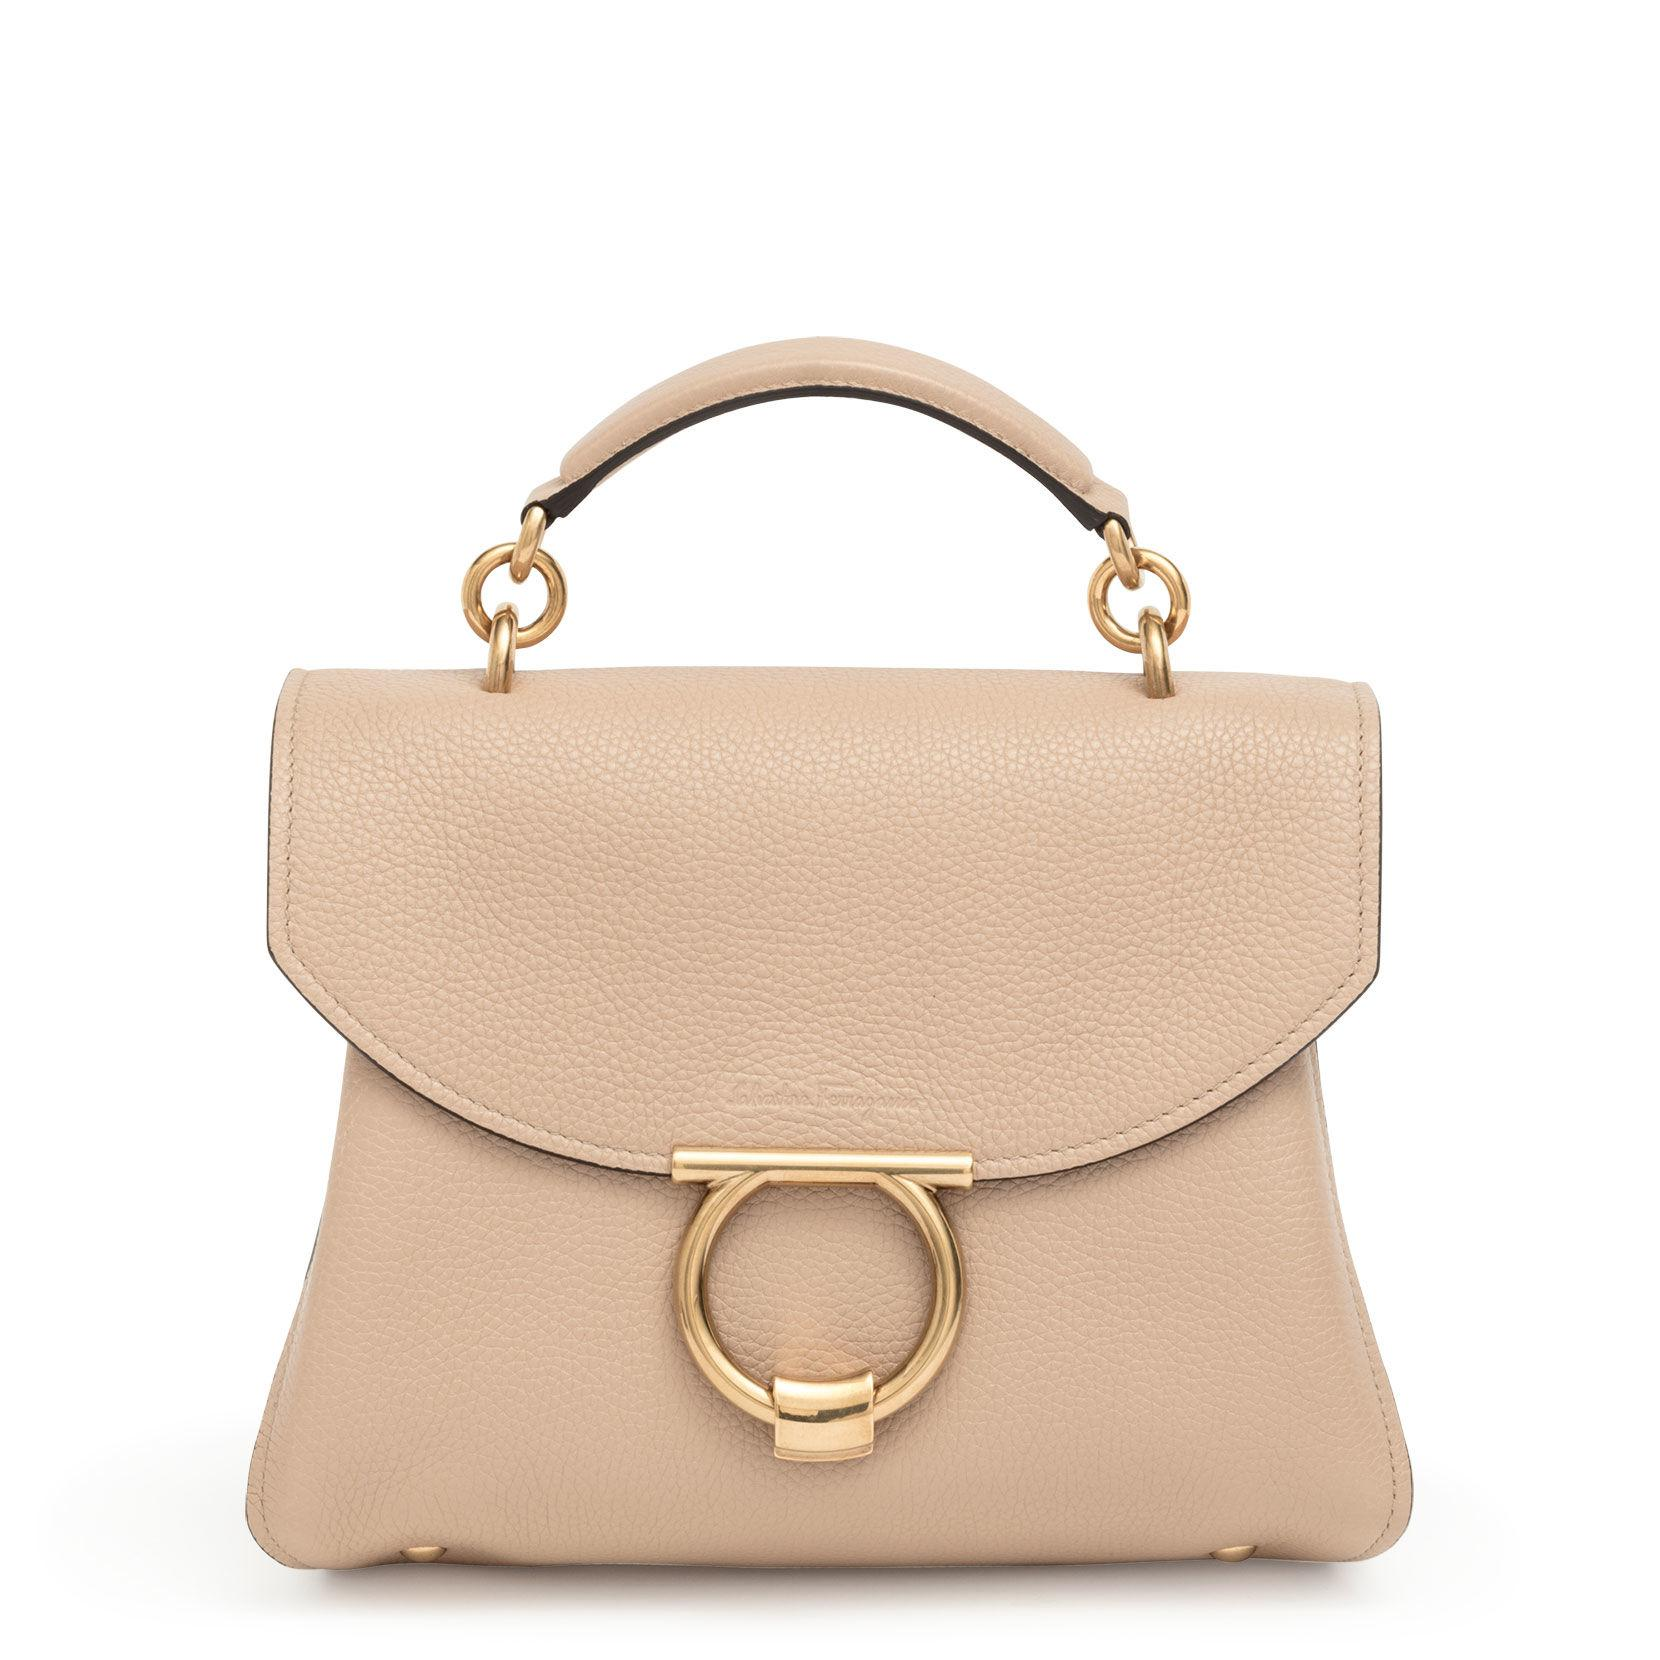 e00615a6eb75 Lyst - Ferragamo Margot S Beige Leather Bag in Natural